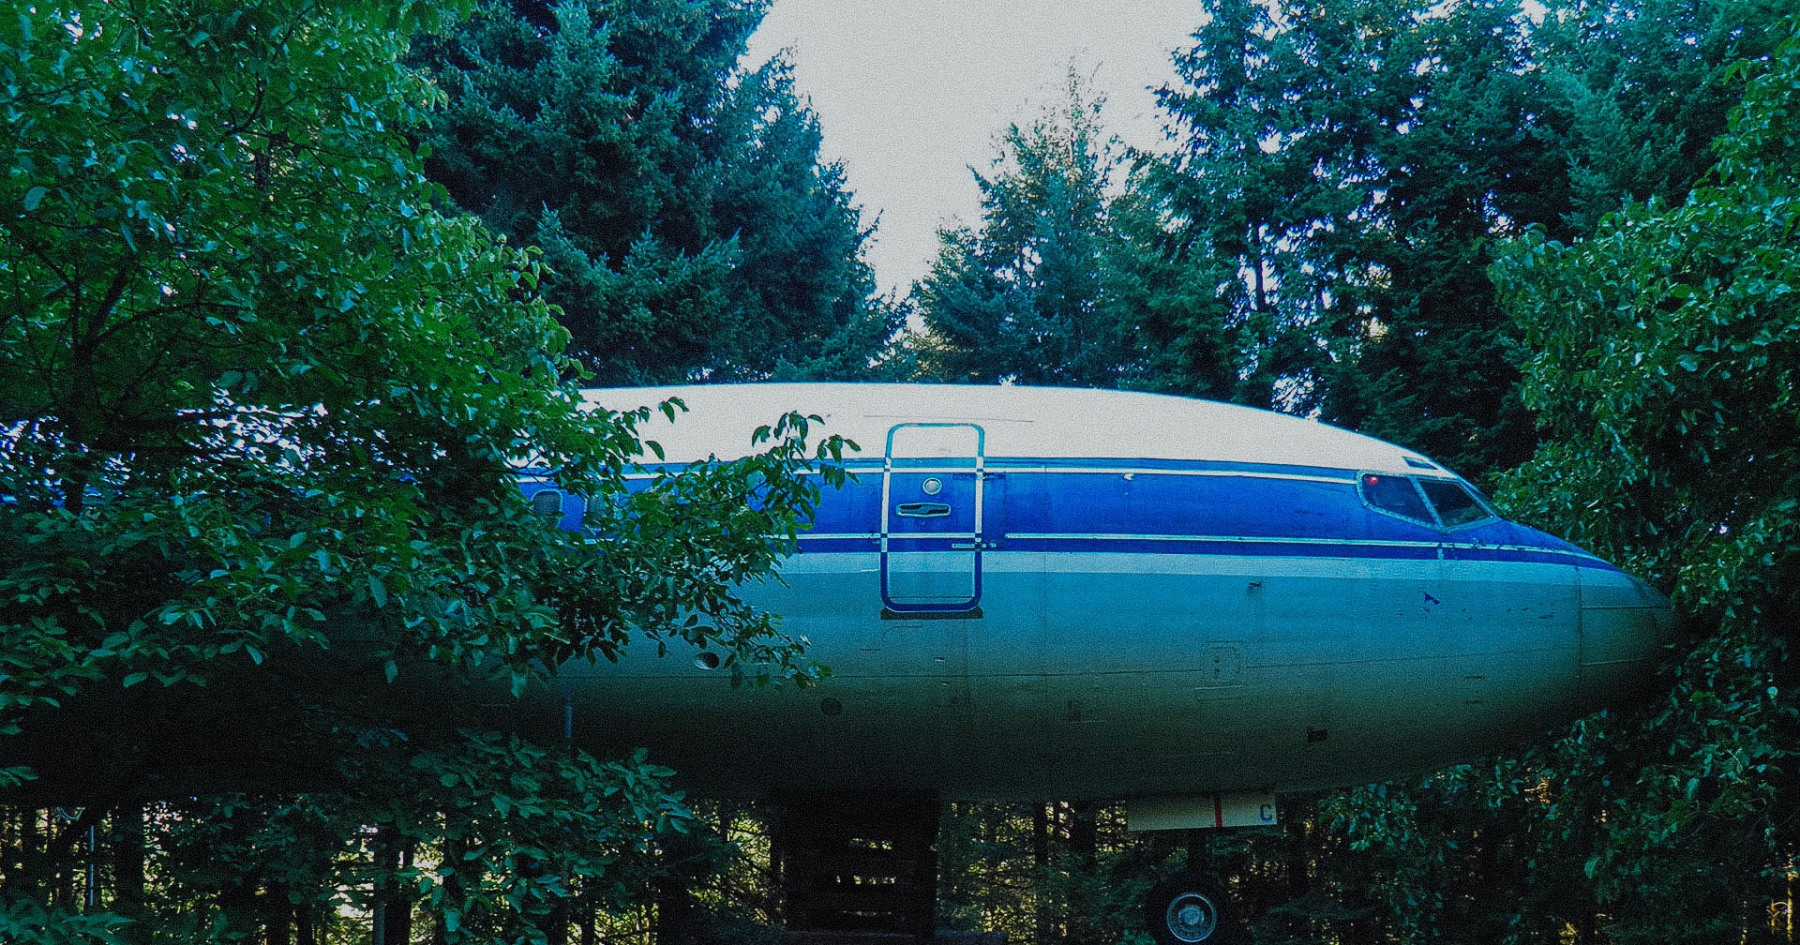 How to Convert a 727 and School Bus Into Your Dream Homes